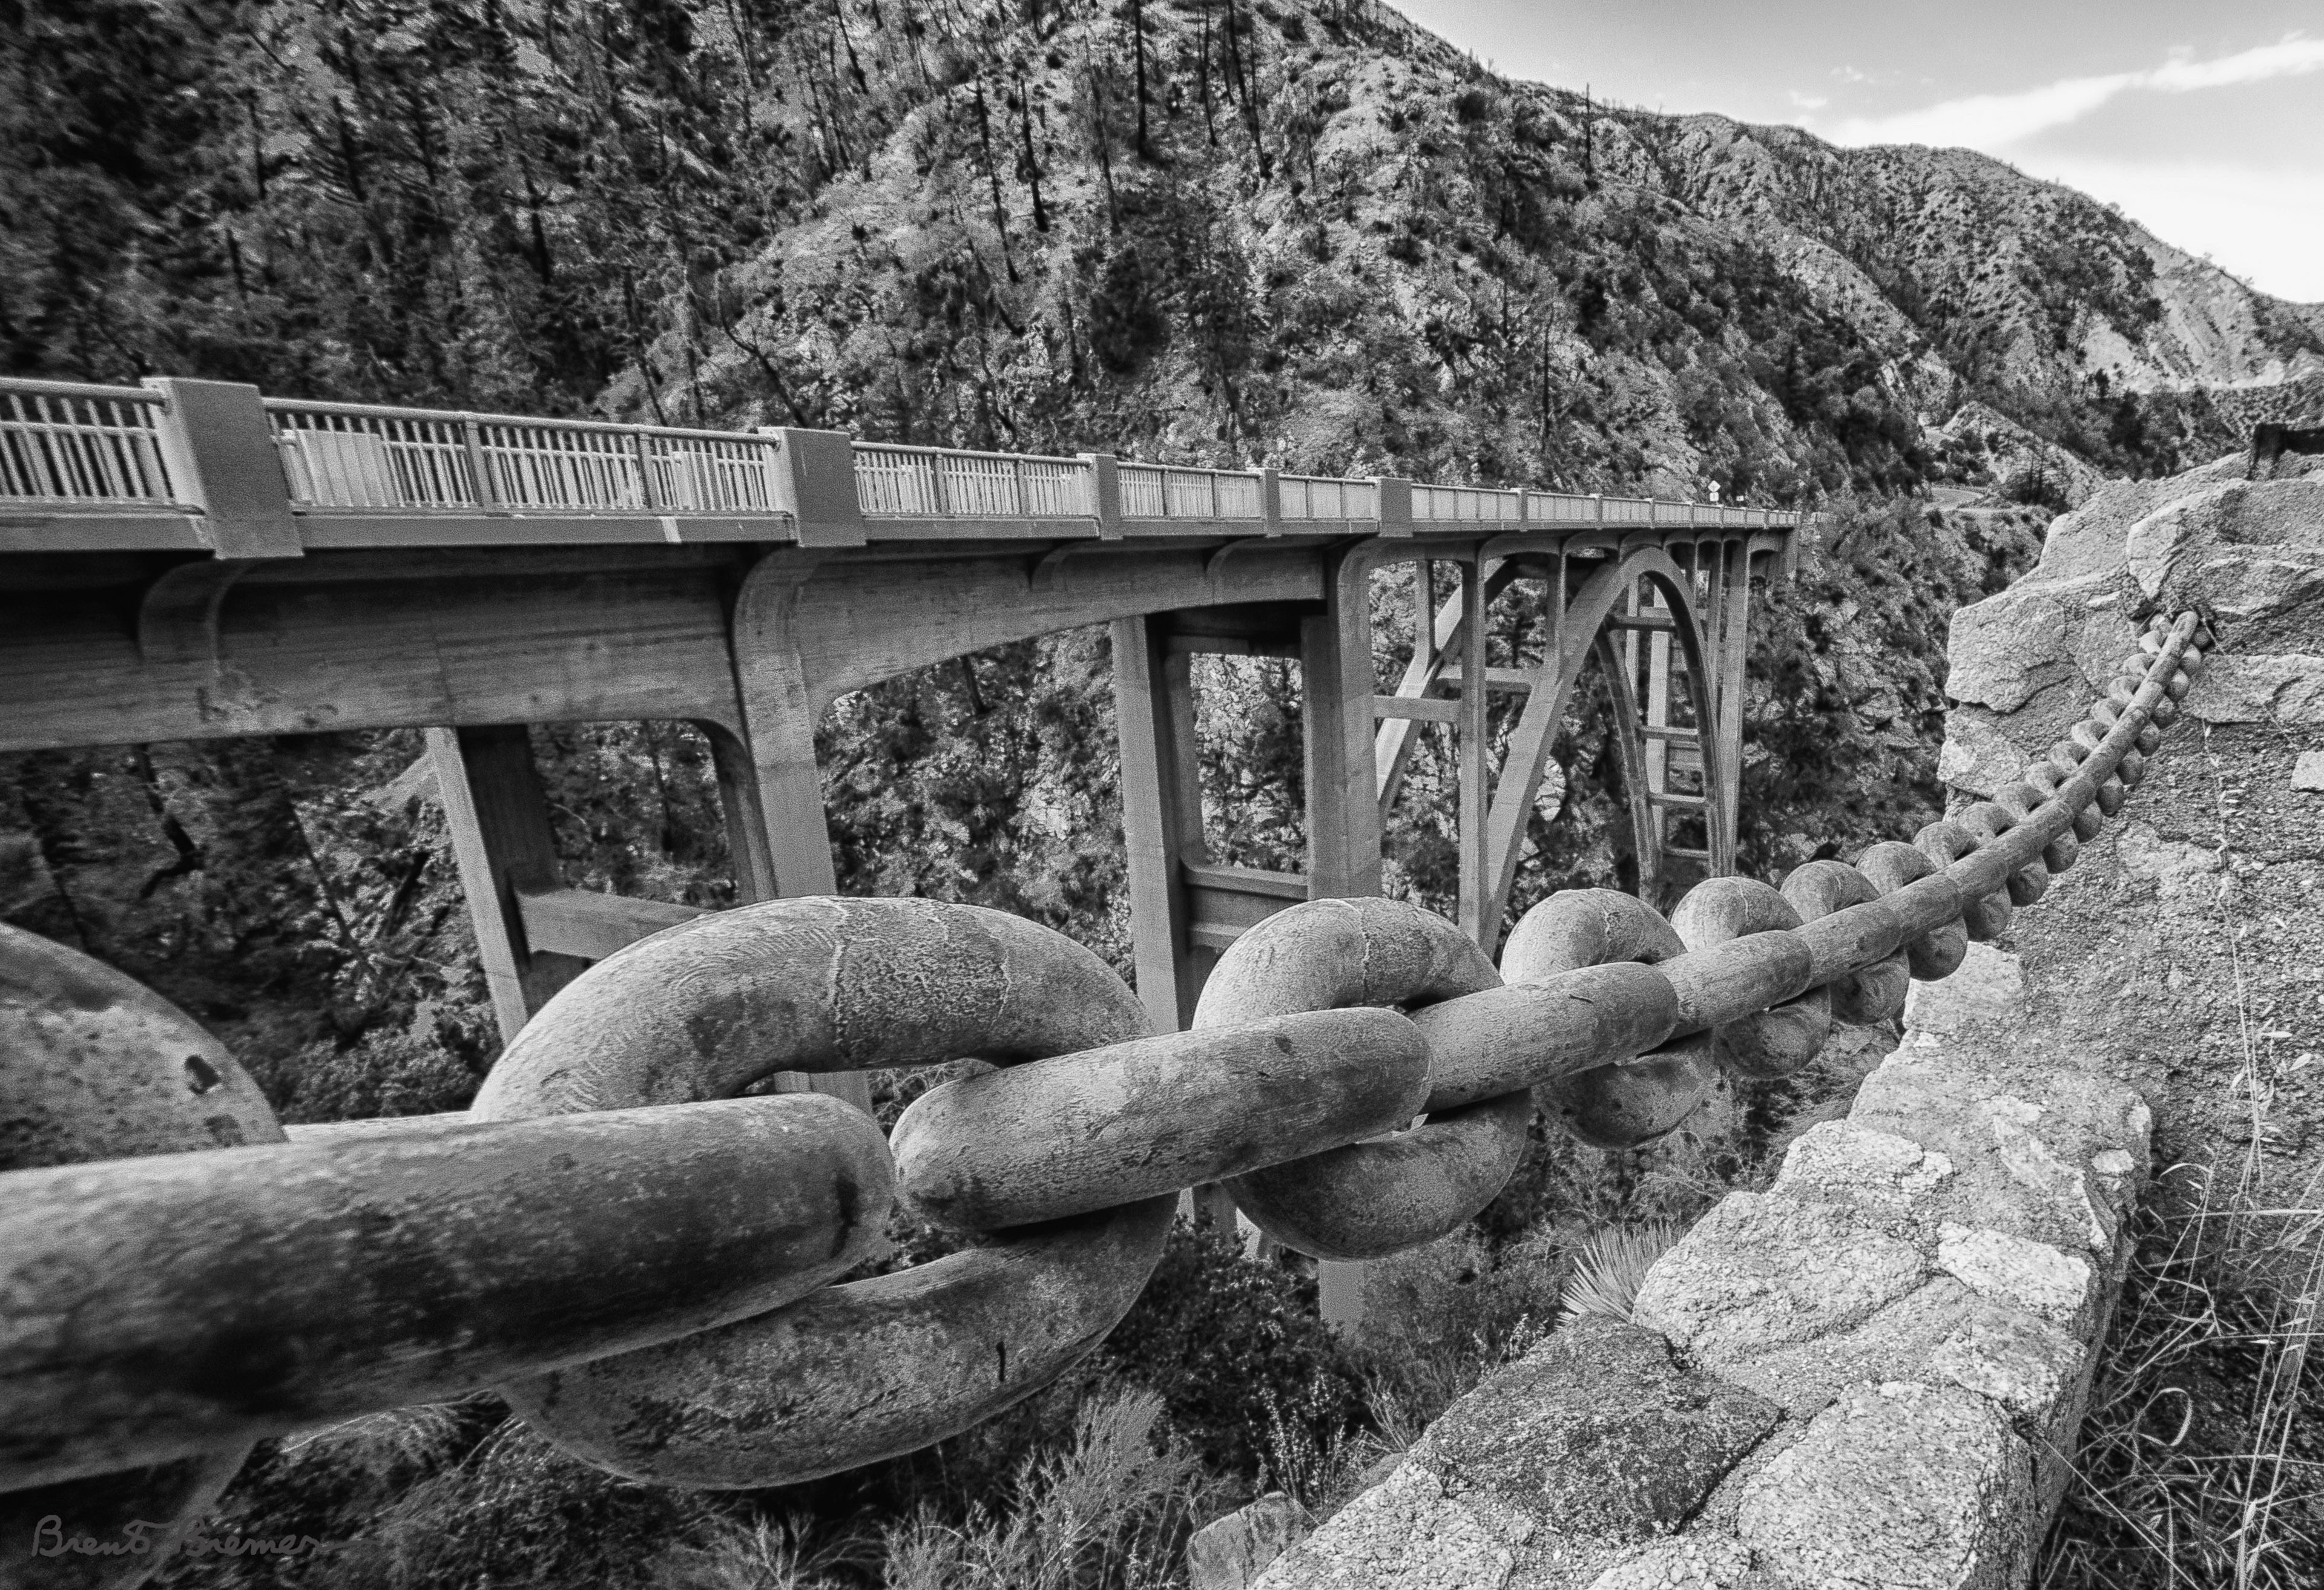 Big Tujunga Canyon Bridge - Brent Bremer